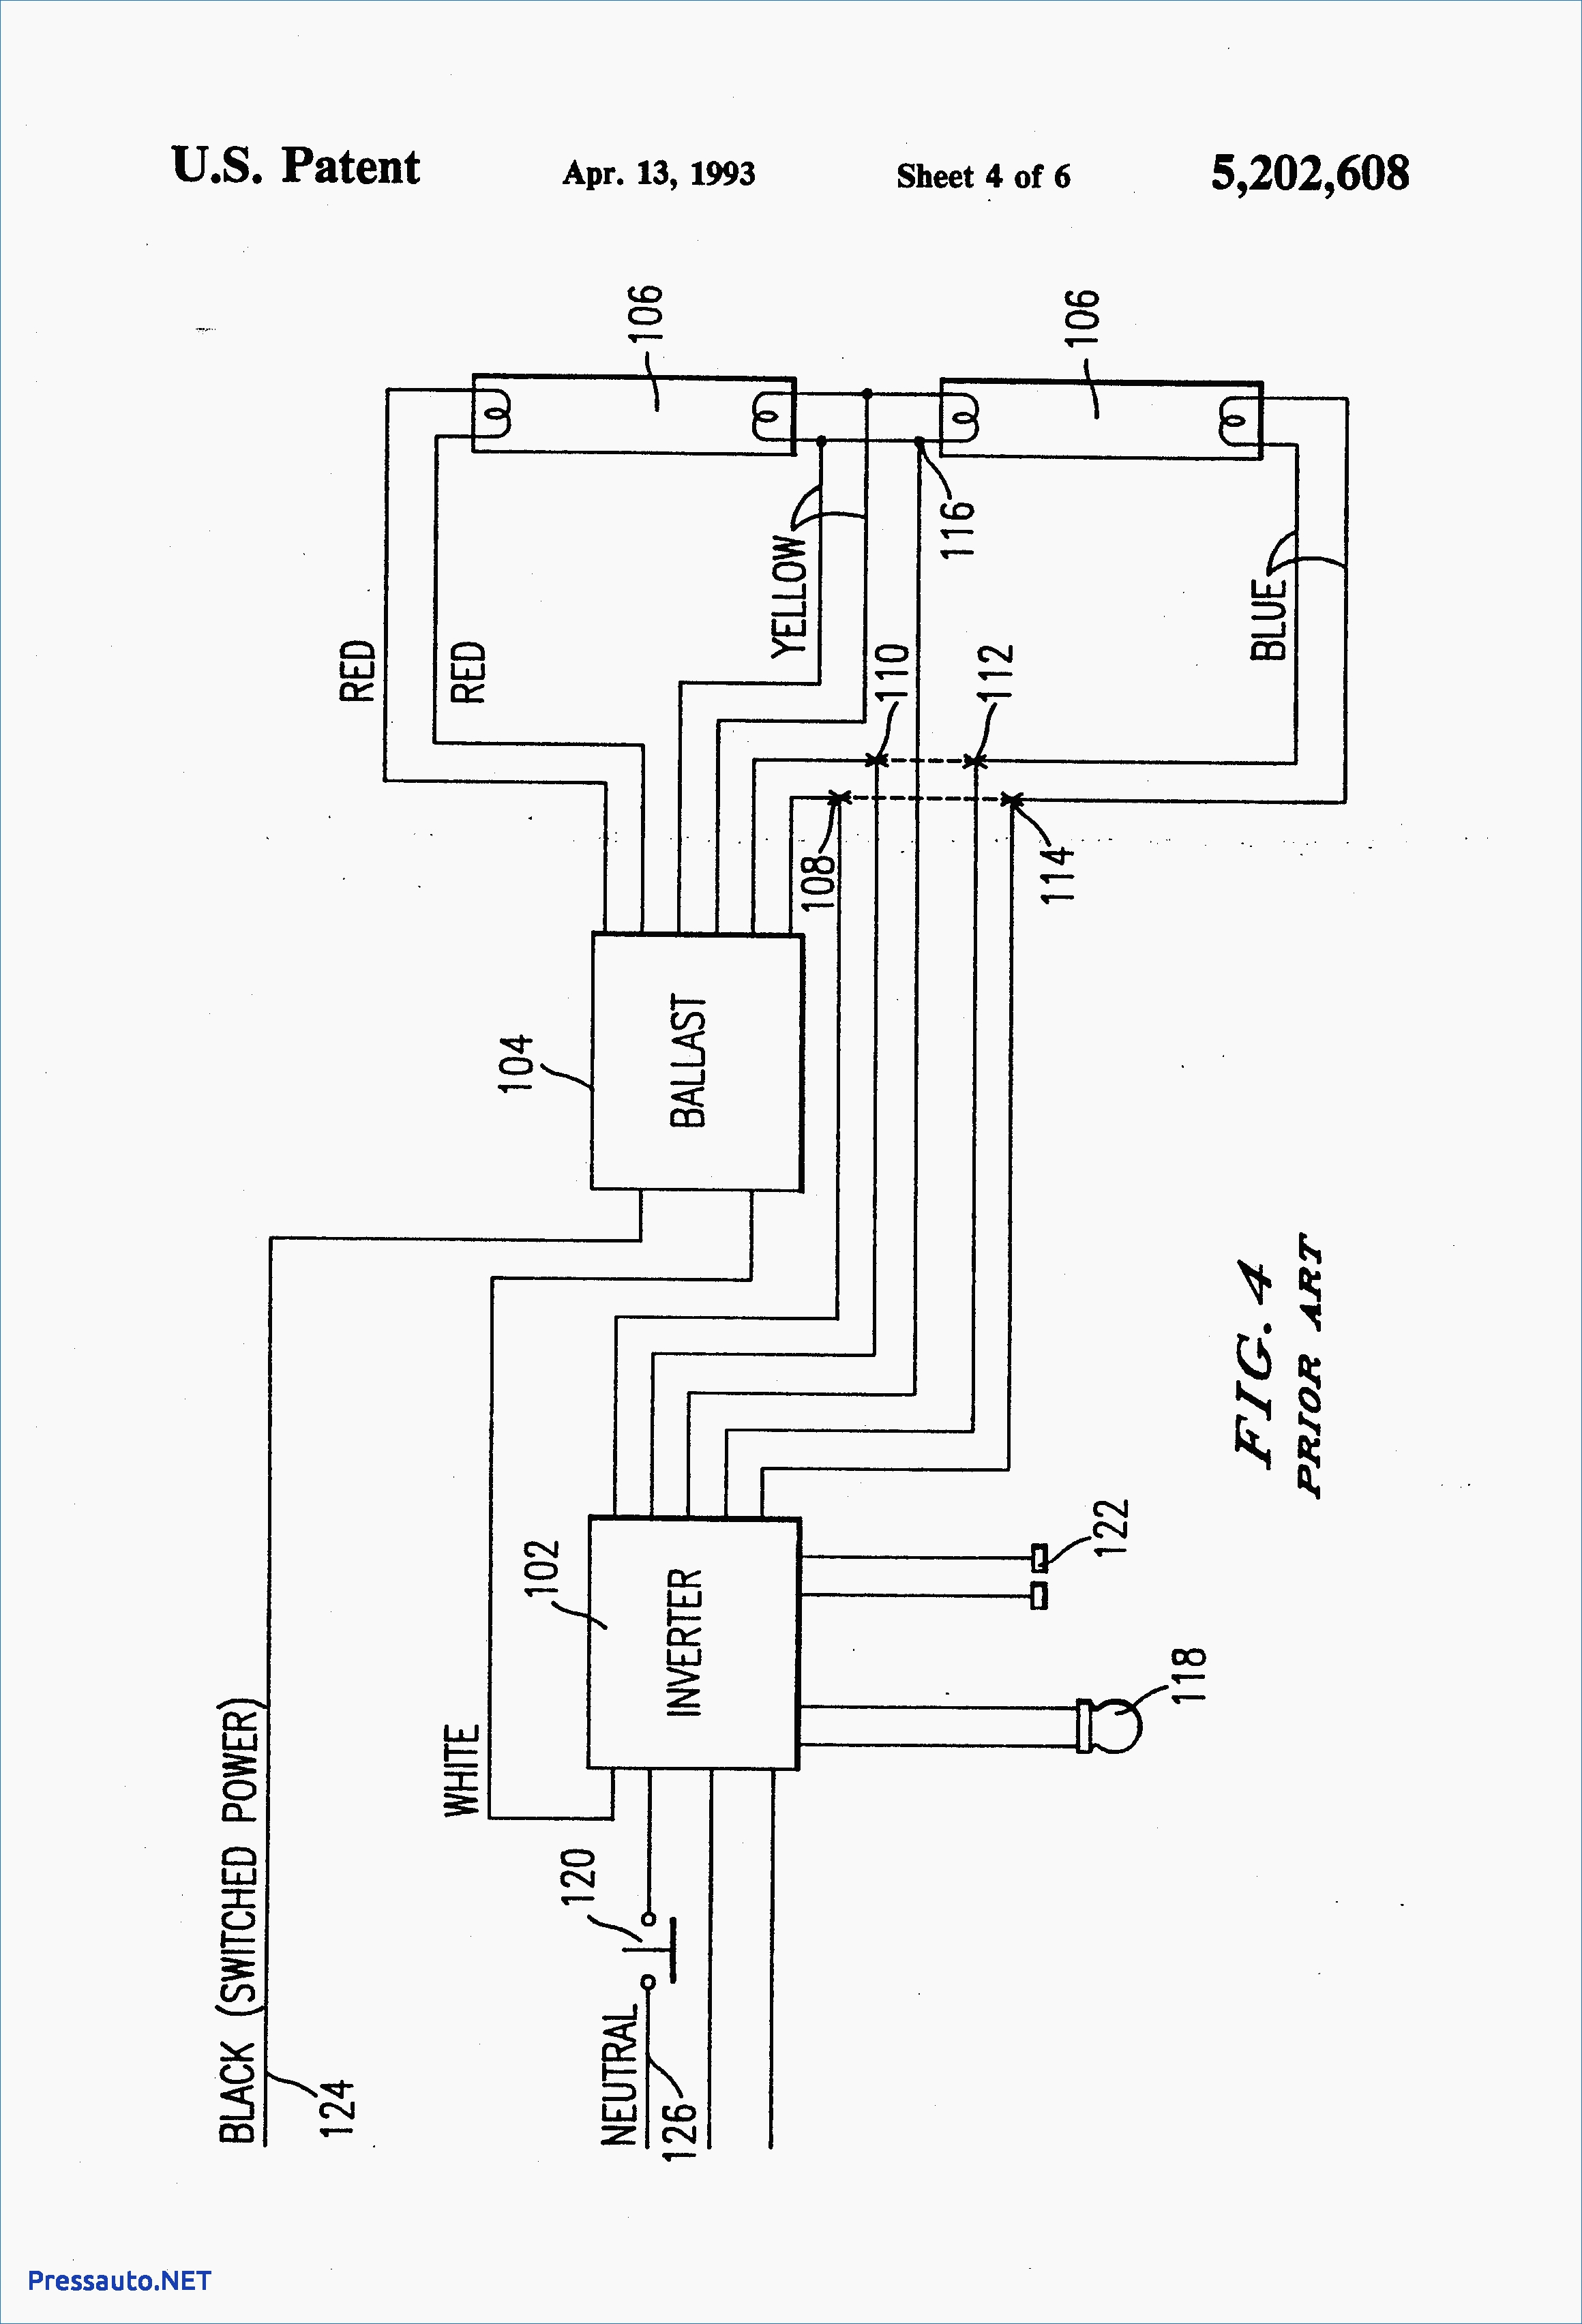 Photocell Wiring Schematic | Wiring Diagram on 12 volt light wiring diagram, 120 volt outlet wiring diagram, 277 volt photocell wiring diagram, 240 volt photocell wiring diagram, photocell control wiring diagram, 24 volt transformer wiring diagram, 120 volt photocell wiring diagram, 480 motor starter wiring diagram, 208 volt photocell wiring diagram, 240 480 motor wiring diagram,